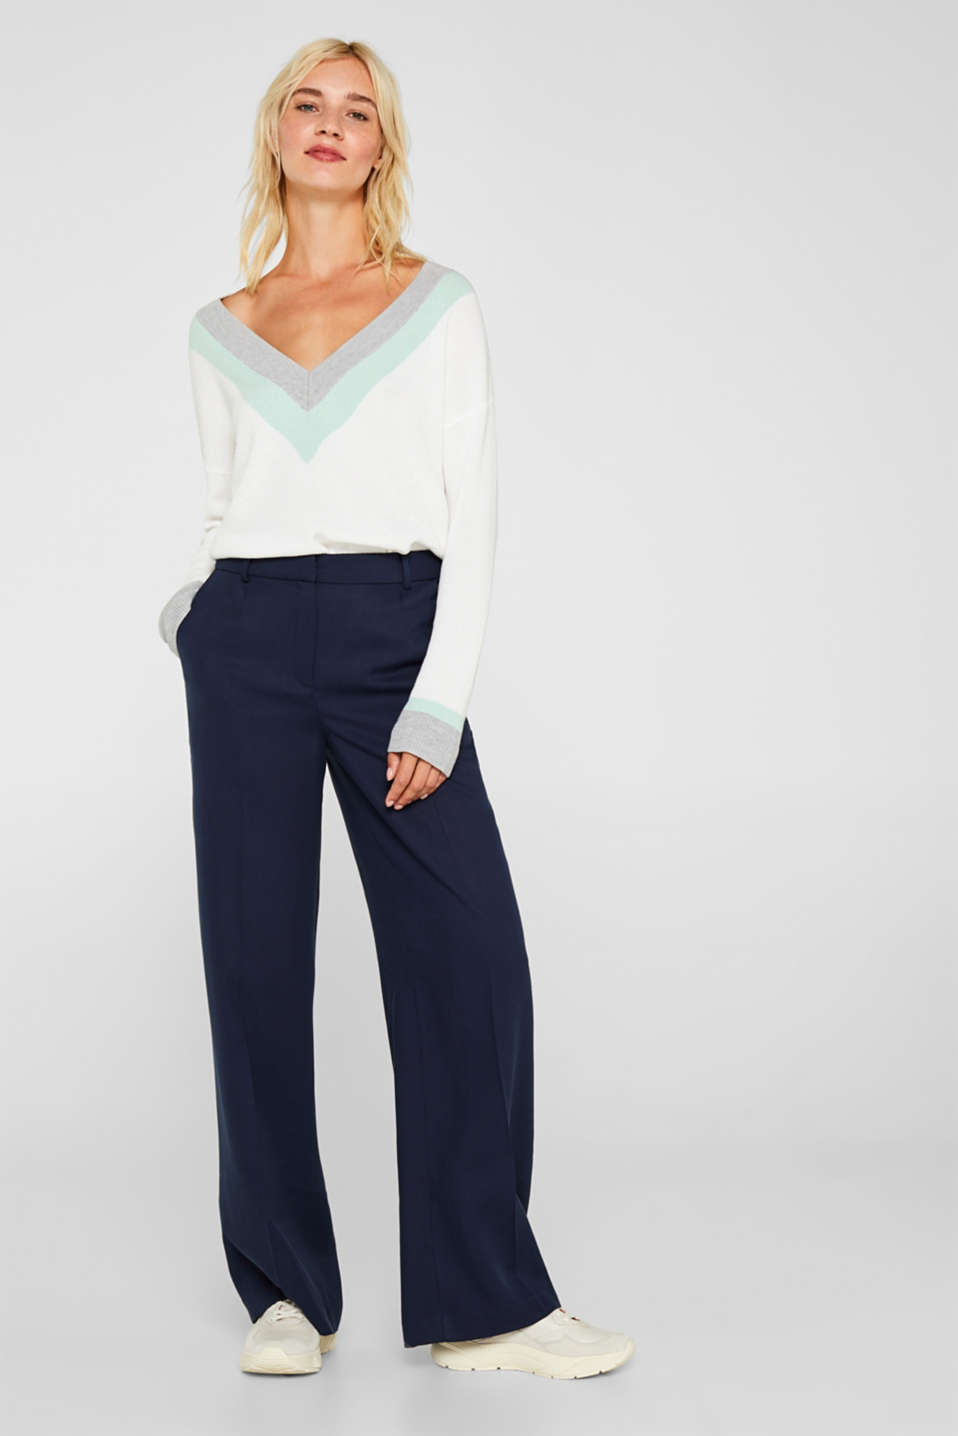 Wide, textured trousers made of 100% tencel